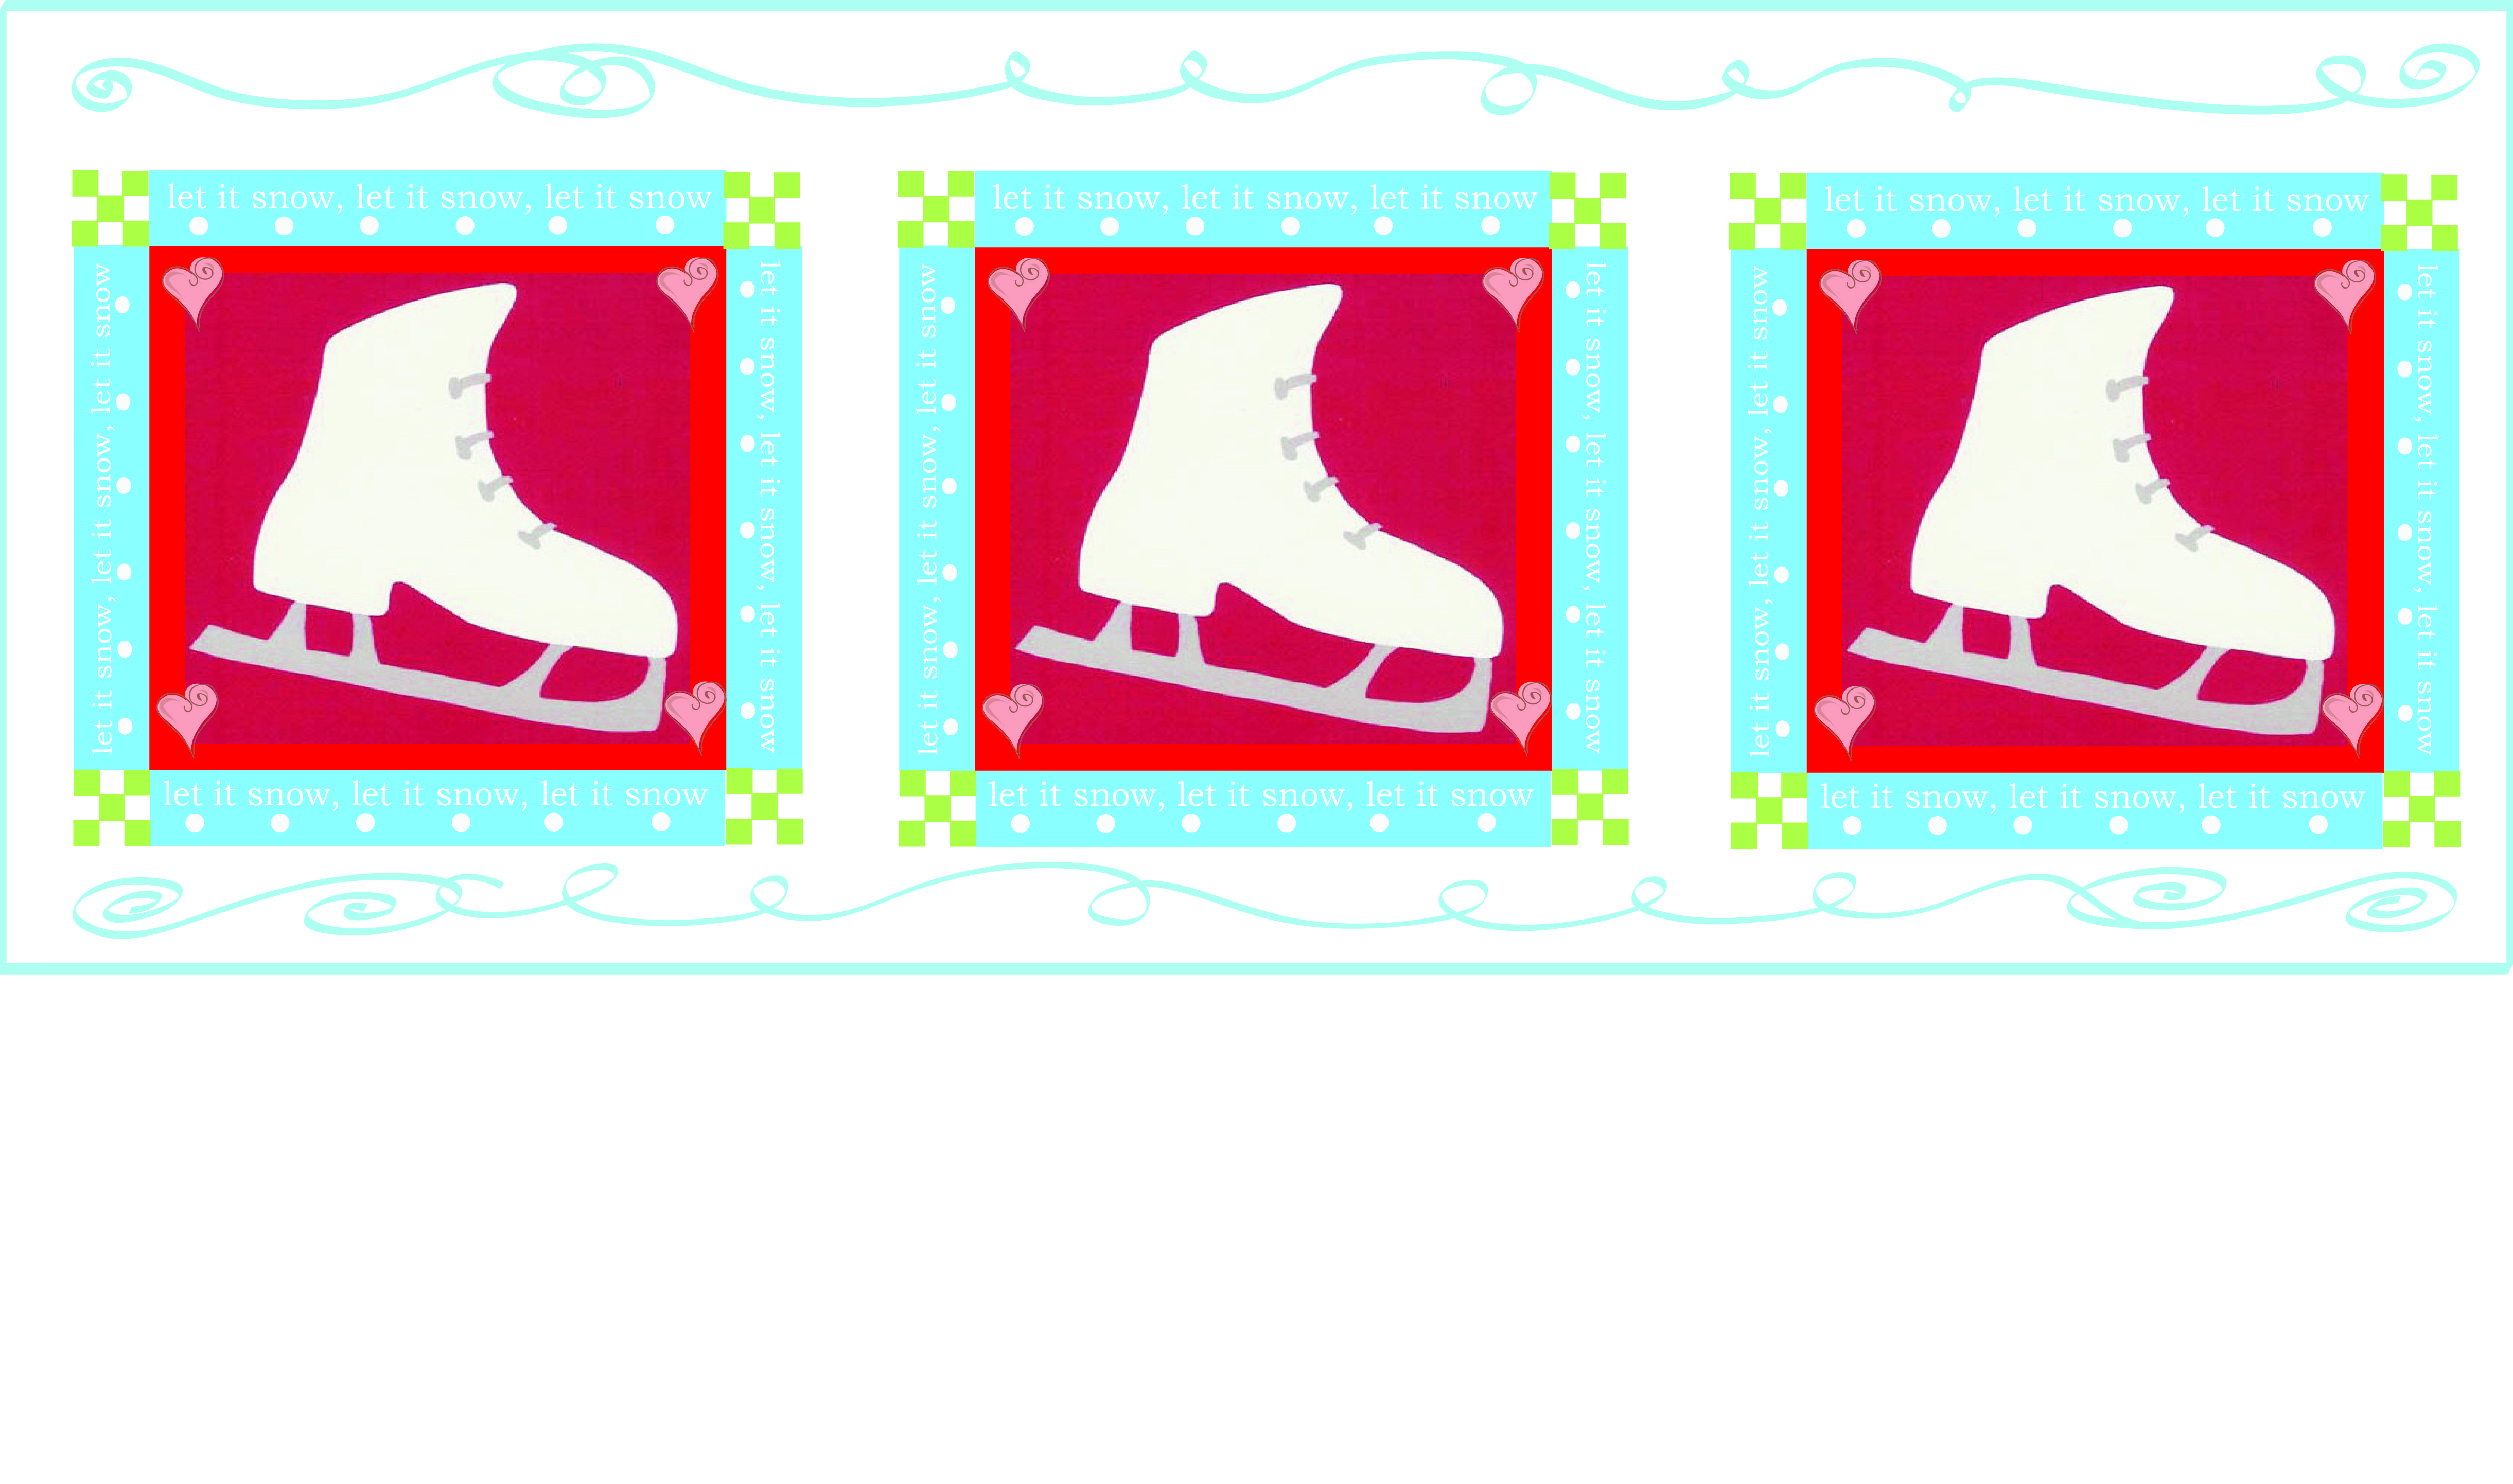 Let it Snow Ice Skates art available for licensing